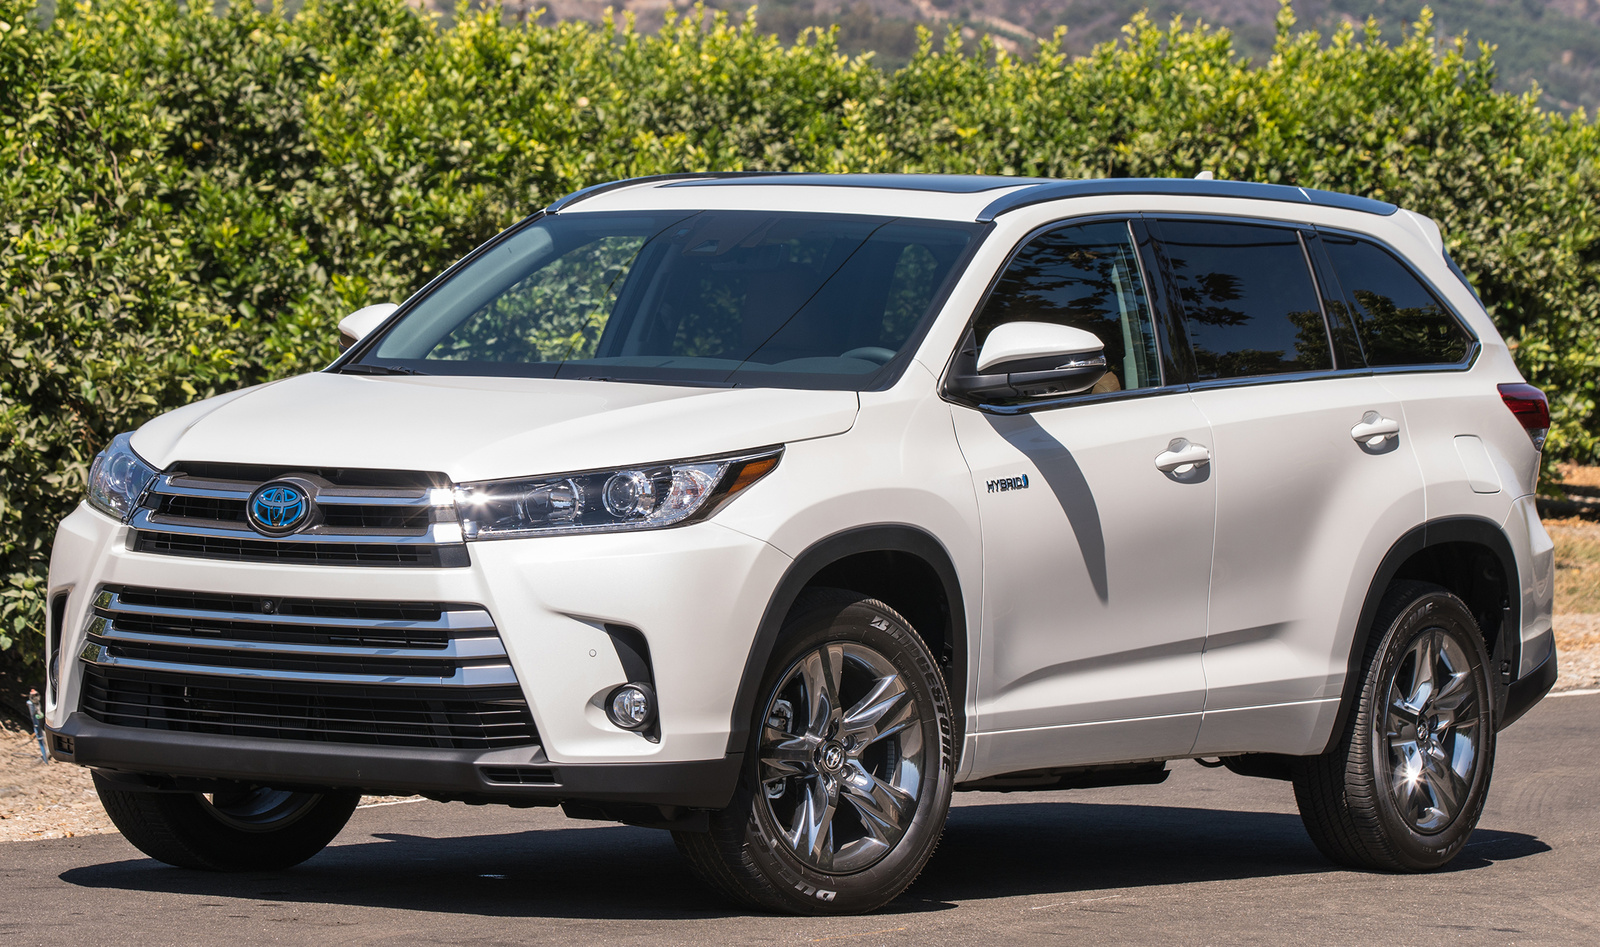 2017 toyota highlander hybrid for sale in reno nv cargurus. Black Bedroom Furniture Sets. Home Design Ideas